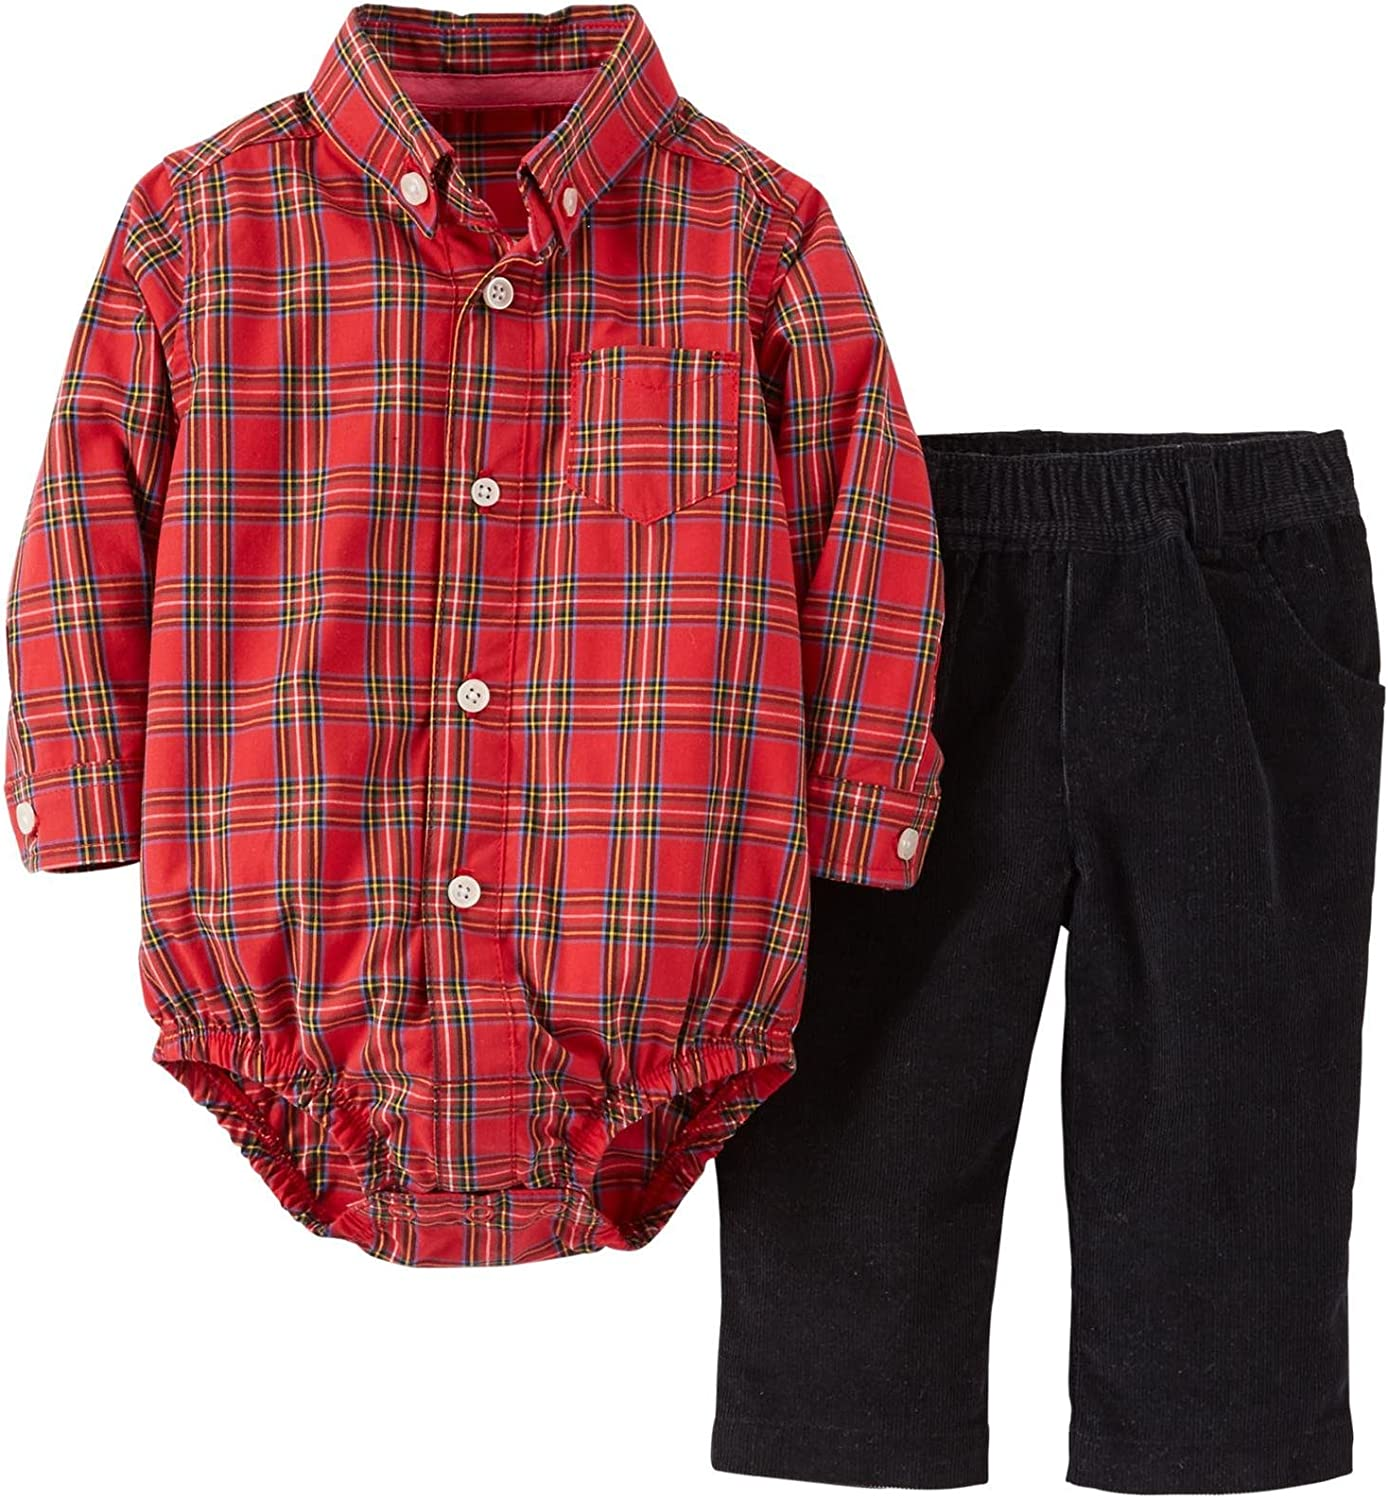 Carter's Baby Boys' 2 Piece Pant Set (Baby) - Red - 24 Months